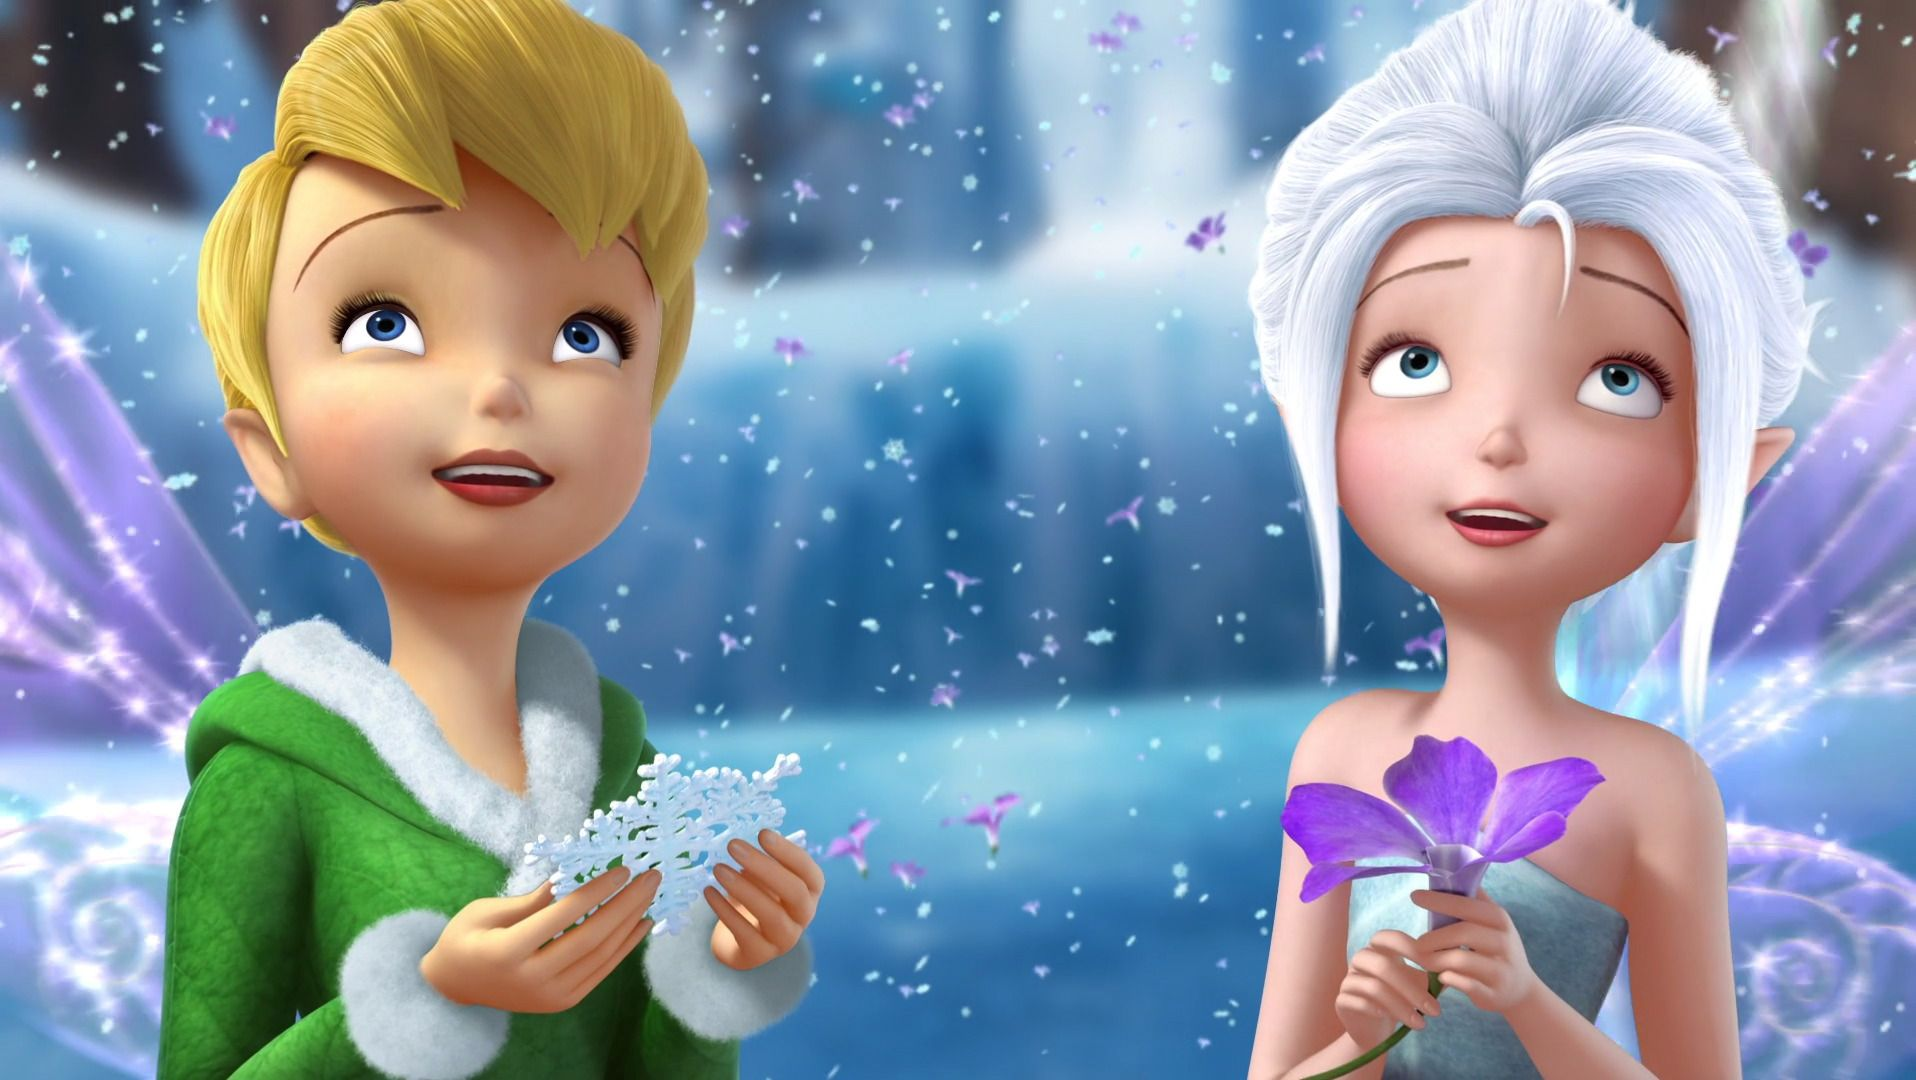 Download Tinkerbell And Periwinkle Wallpaper Widescreen Resolution